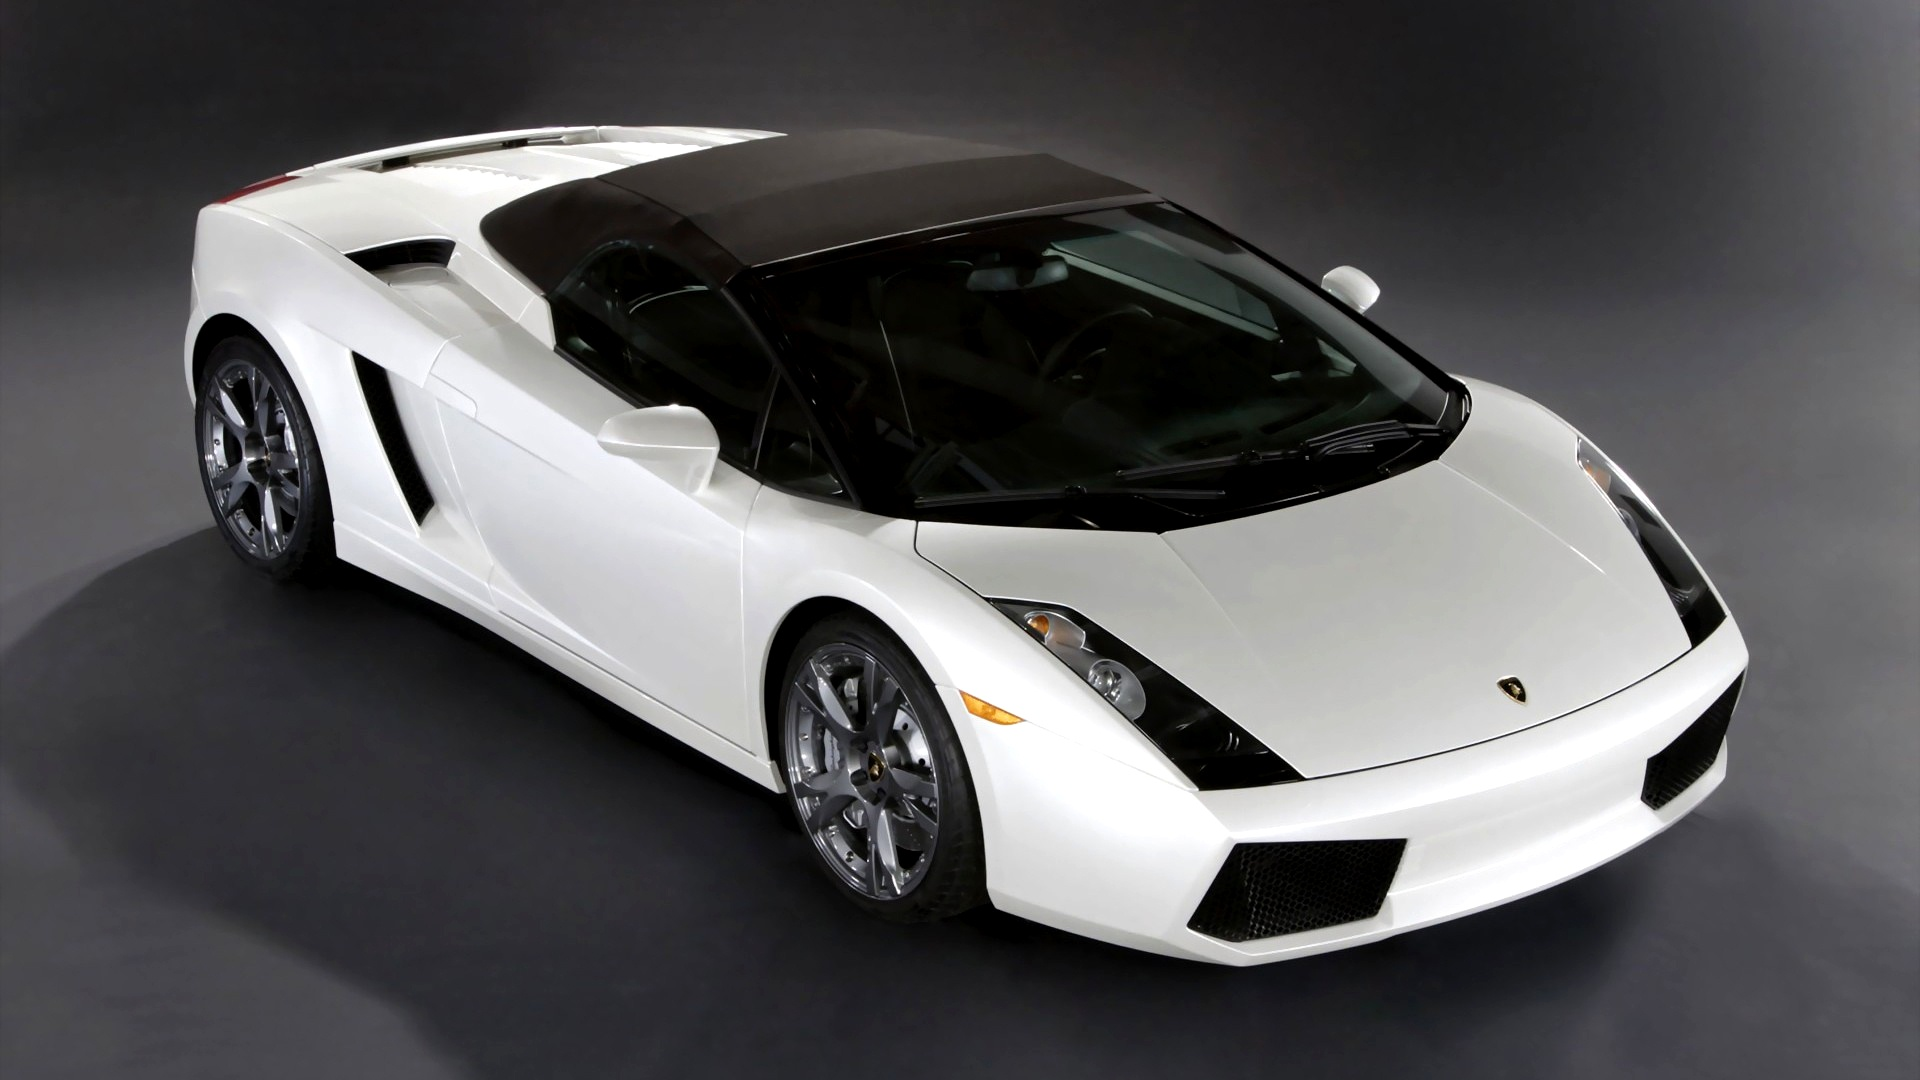 42 1080p Lamborghini Wallpaper On Wallpapersafari